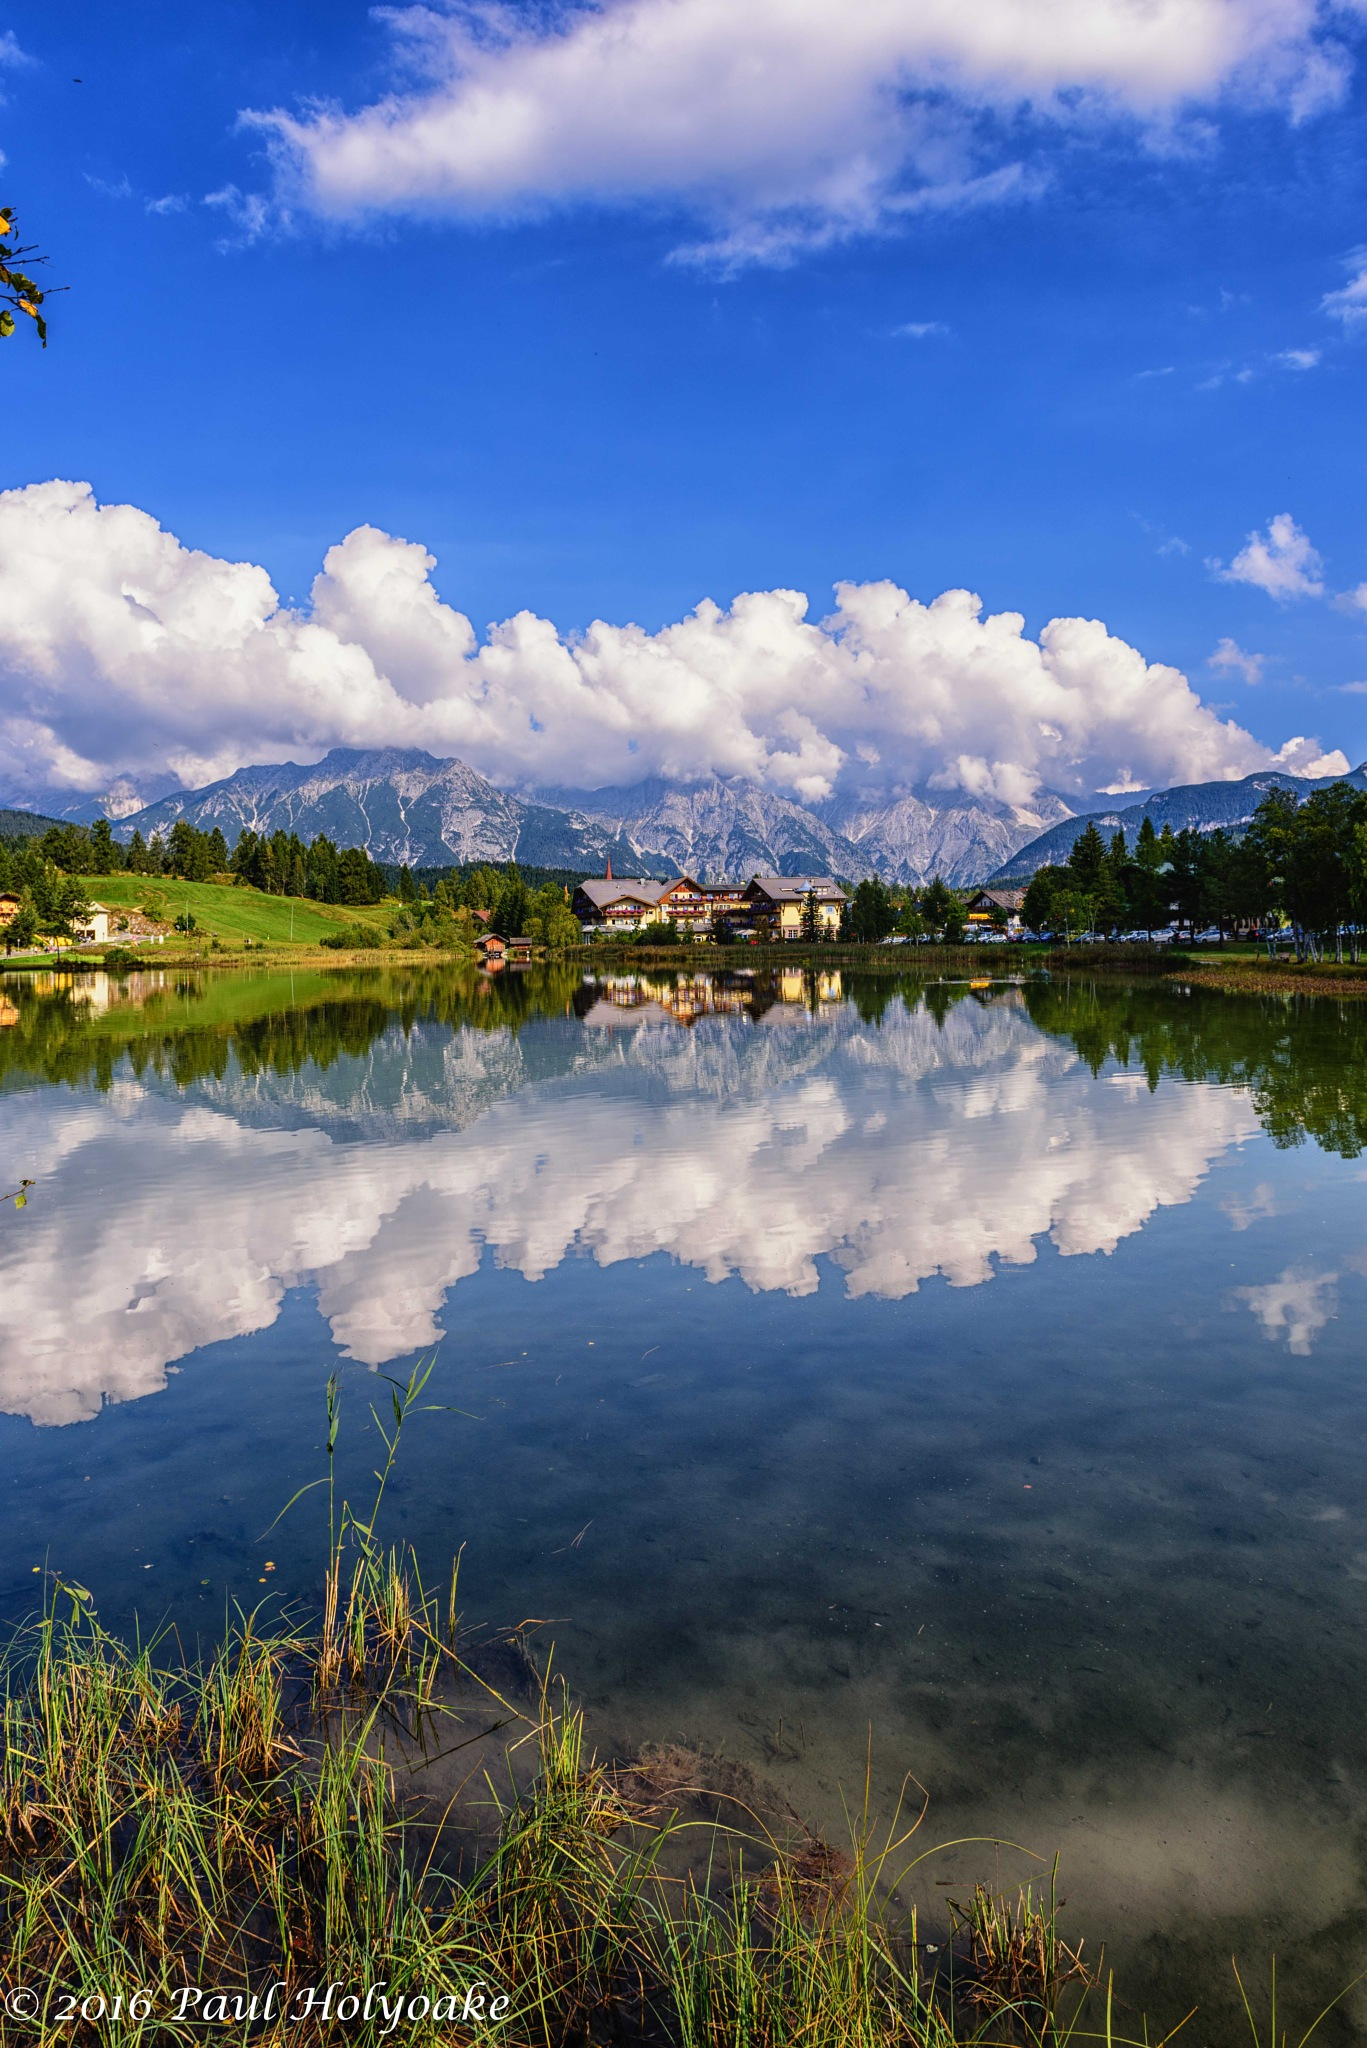 Smooth Reflection by Photon